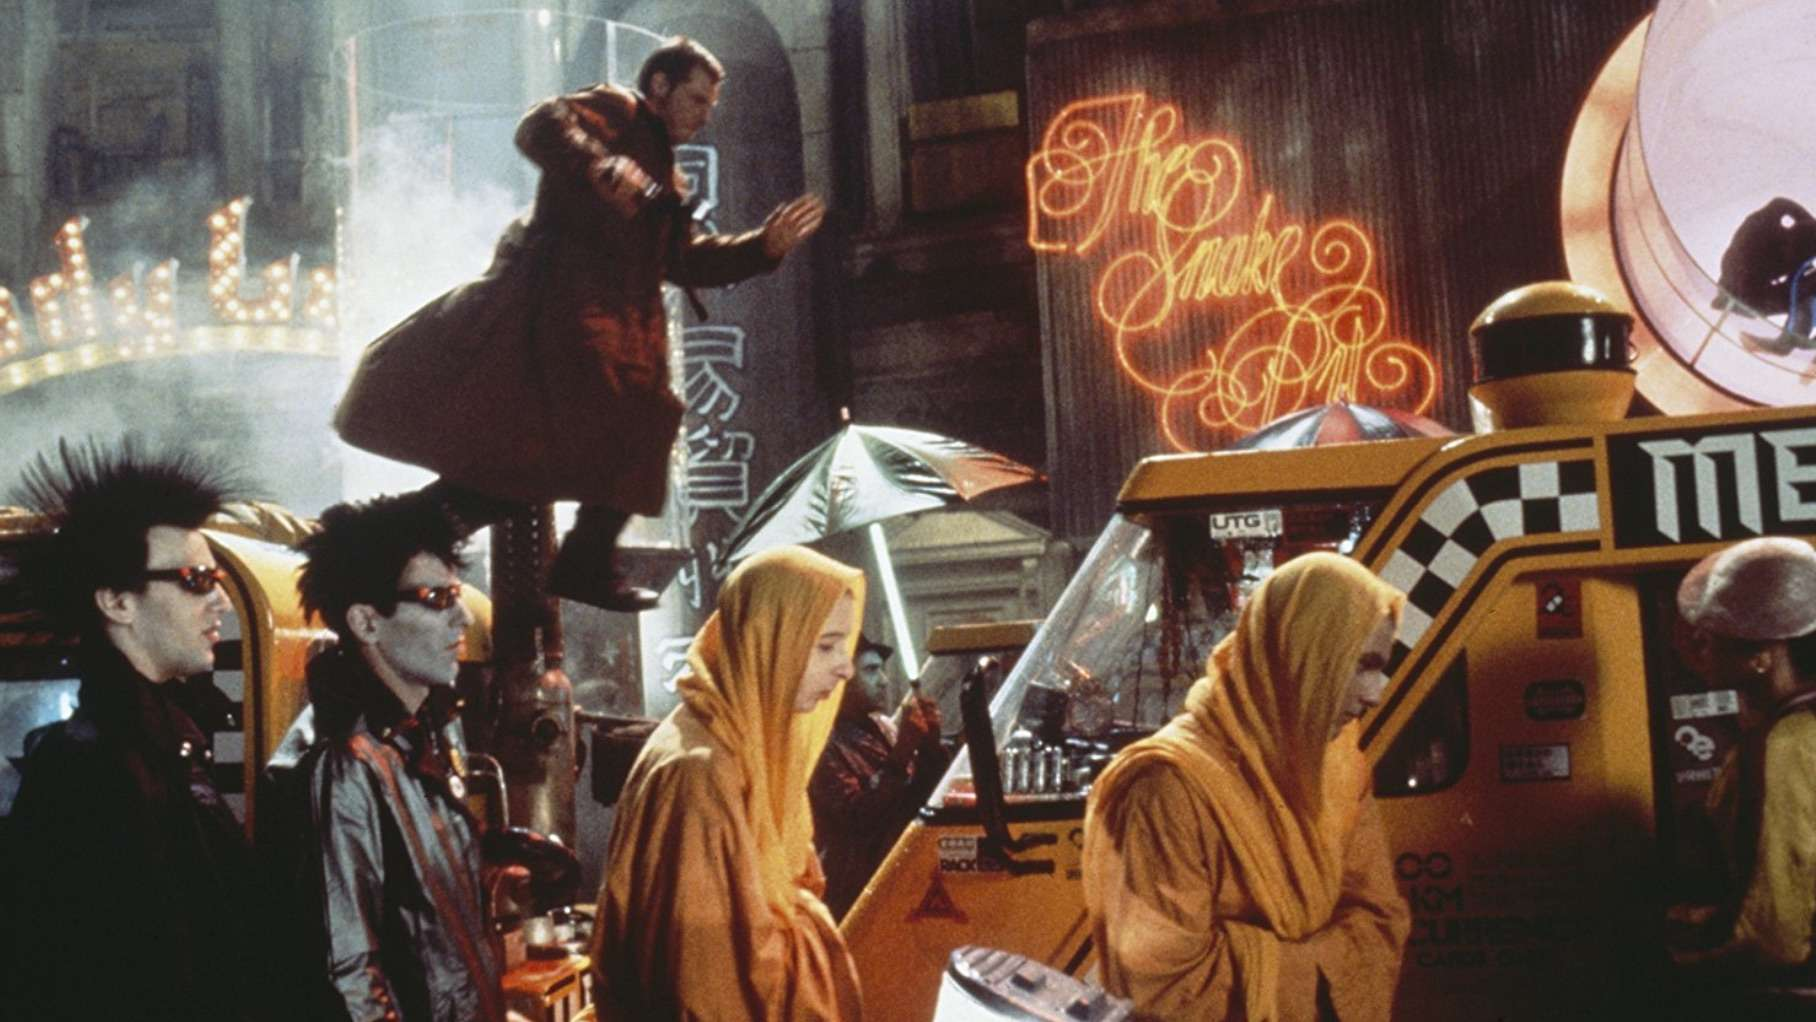 Harrison Ford in pursuit of replicants in Blade Runner (1982)